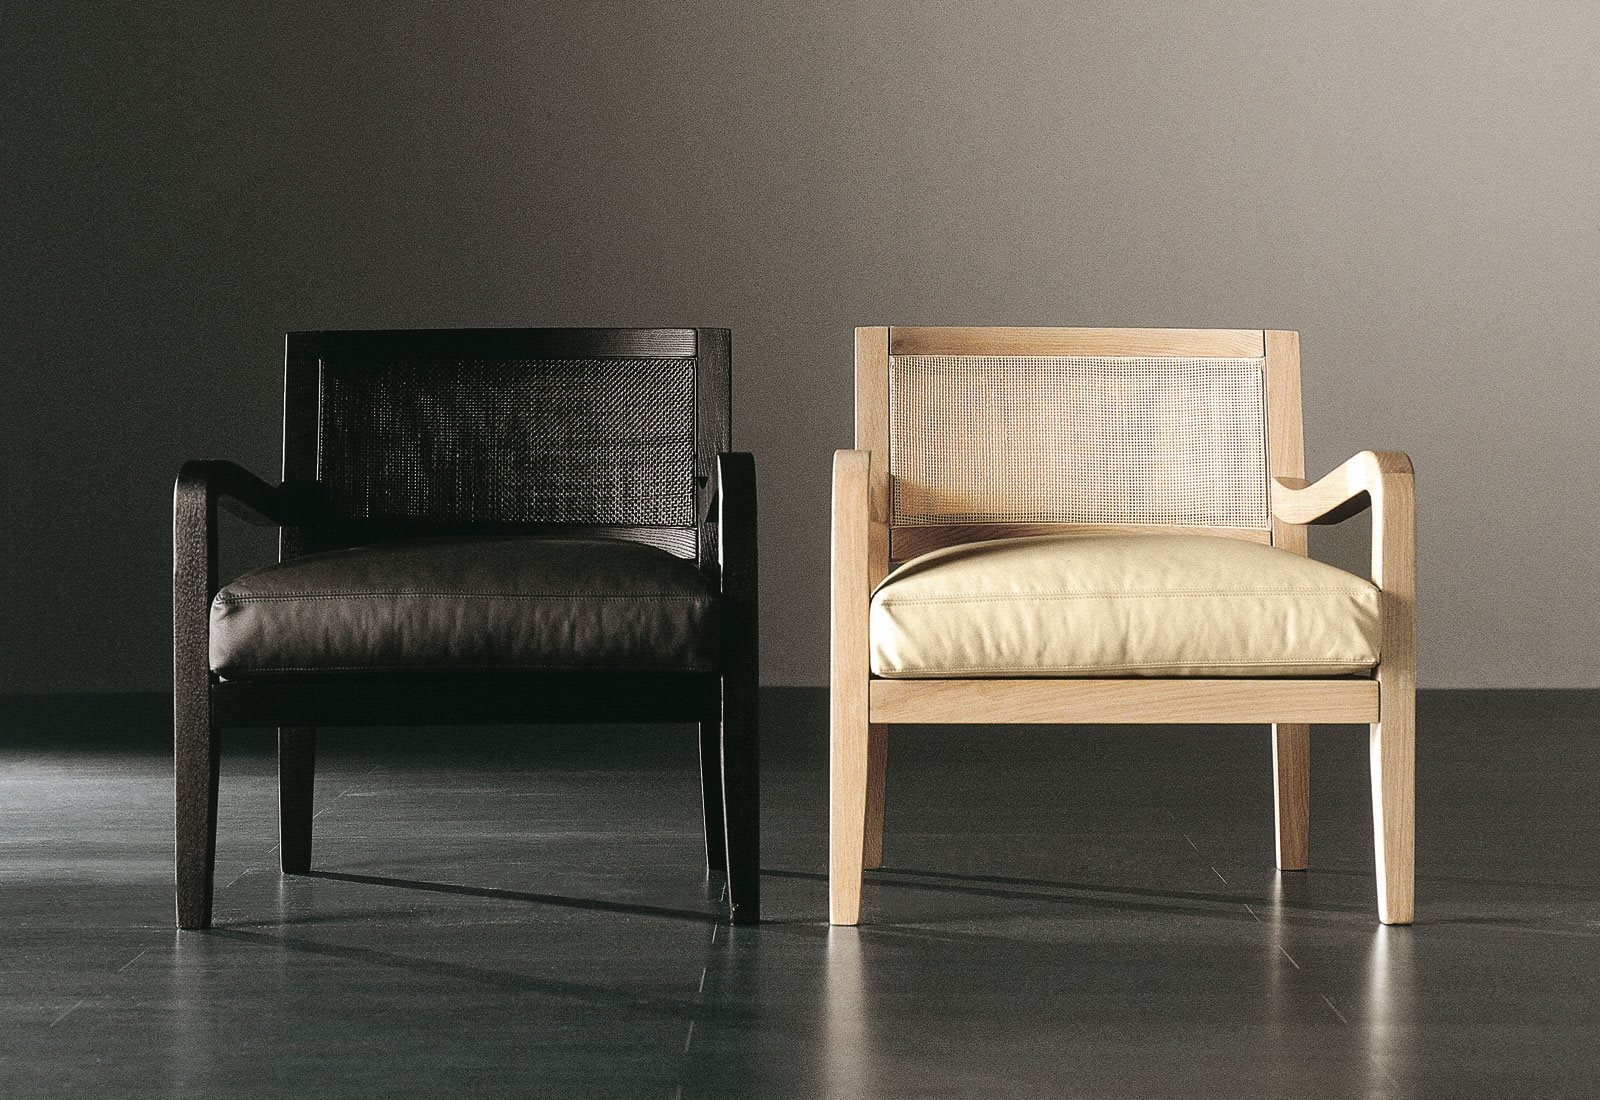 Forrest Wood Small Armchairs Meridiani Srl In Small Arm Chairs (Image 7 of 15)